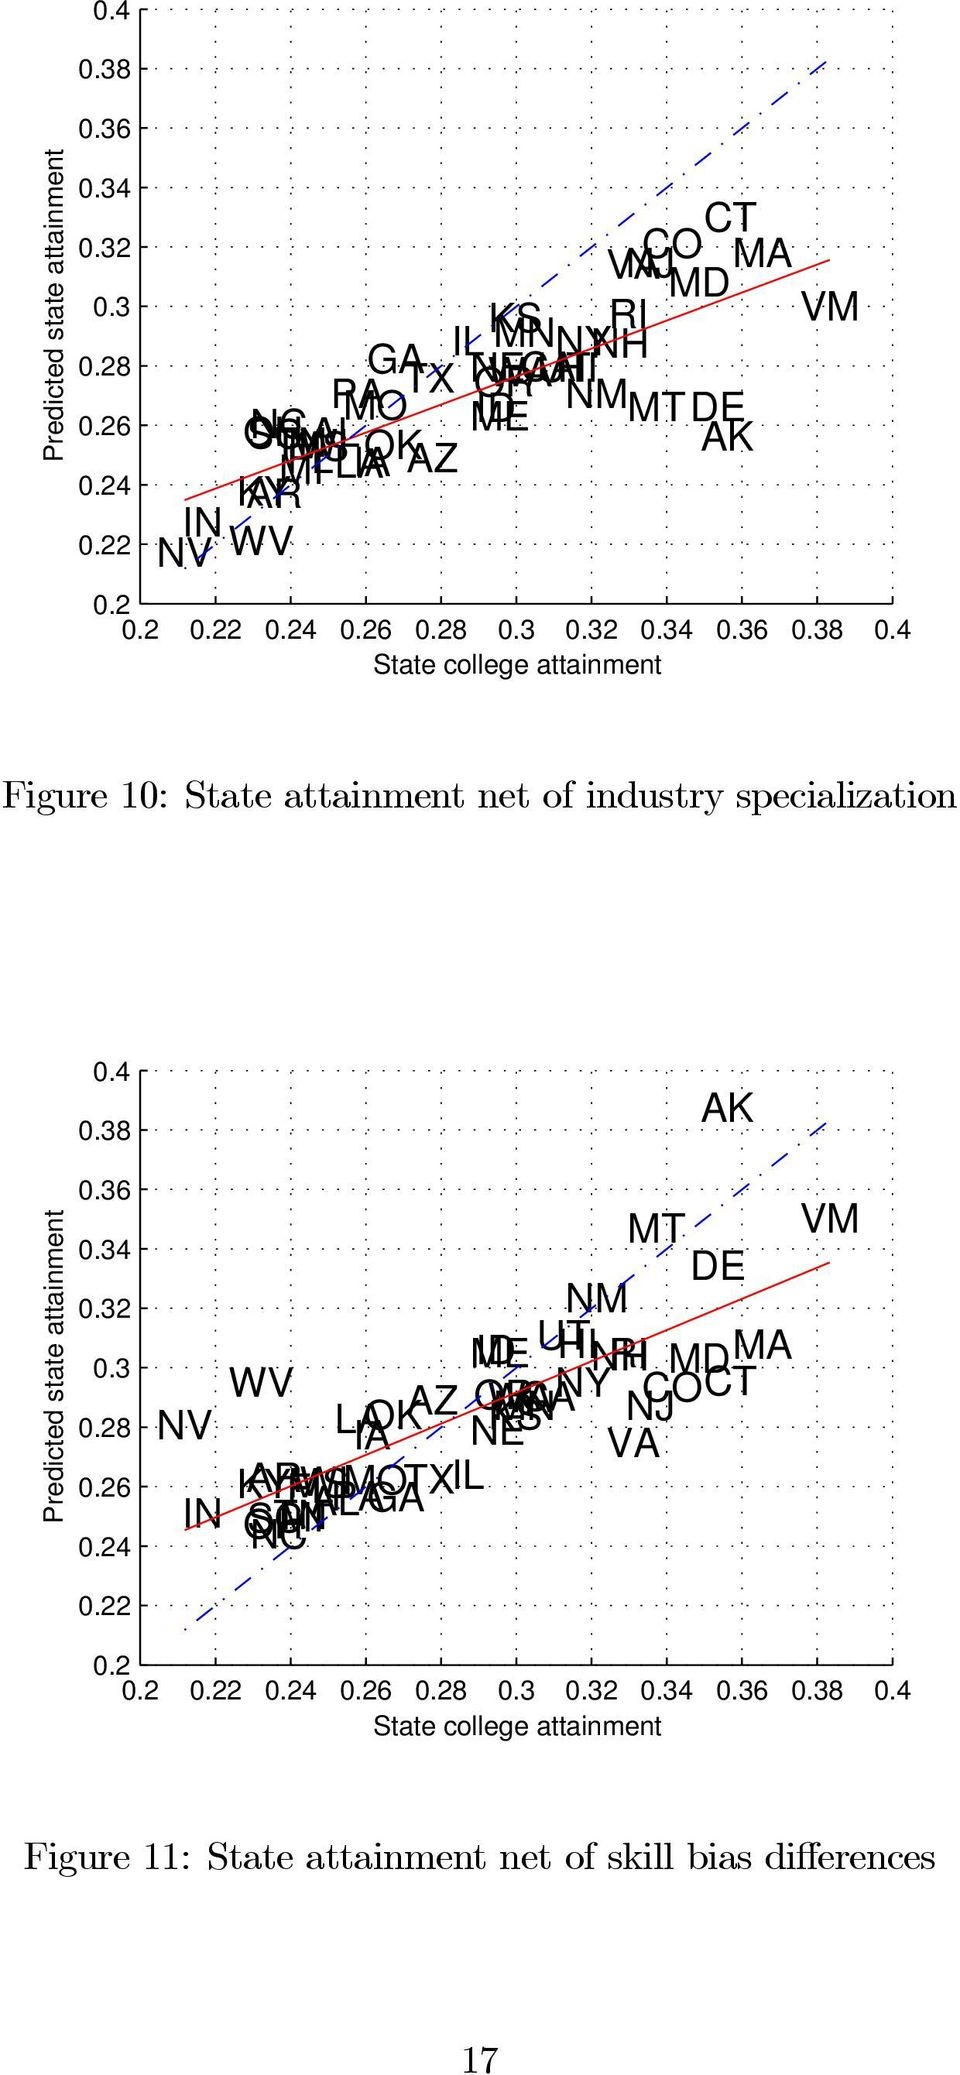 32 0.34 0.36 0.38 0.4 State college attainment Figure 10: State attainment net of industry specialization Predicted state attainment 0.4 0.38 0.36 0.34 0.32 0.3 0.28 0.26 0.